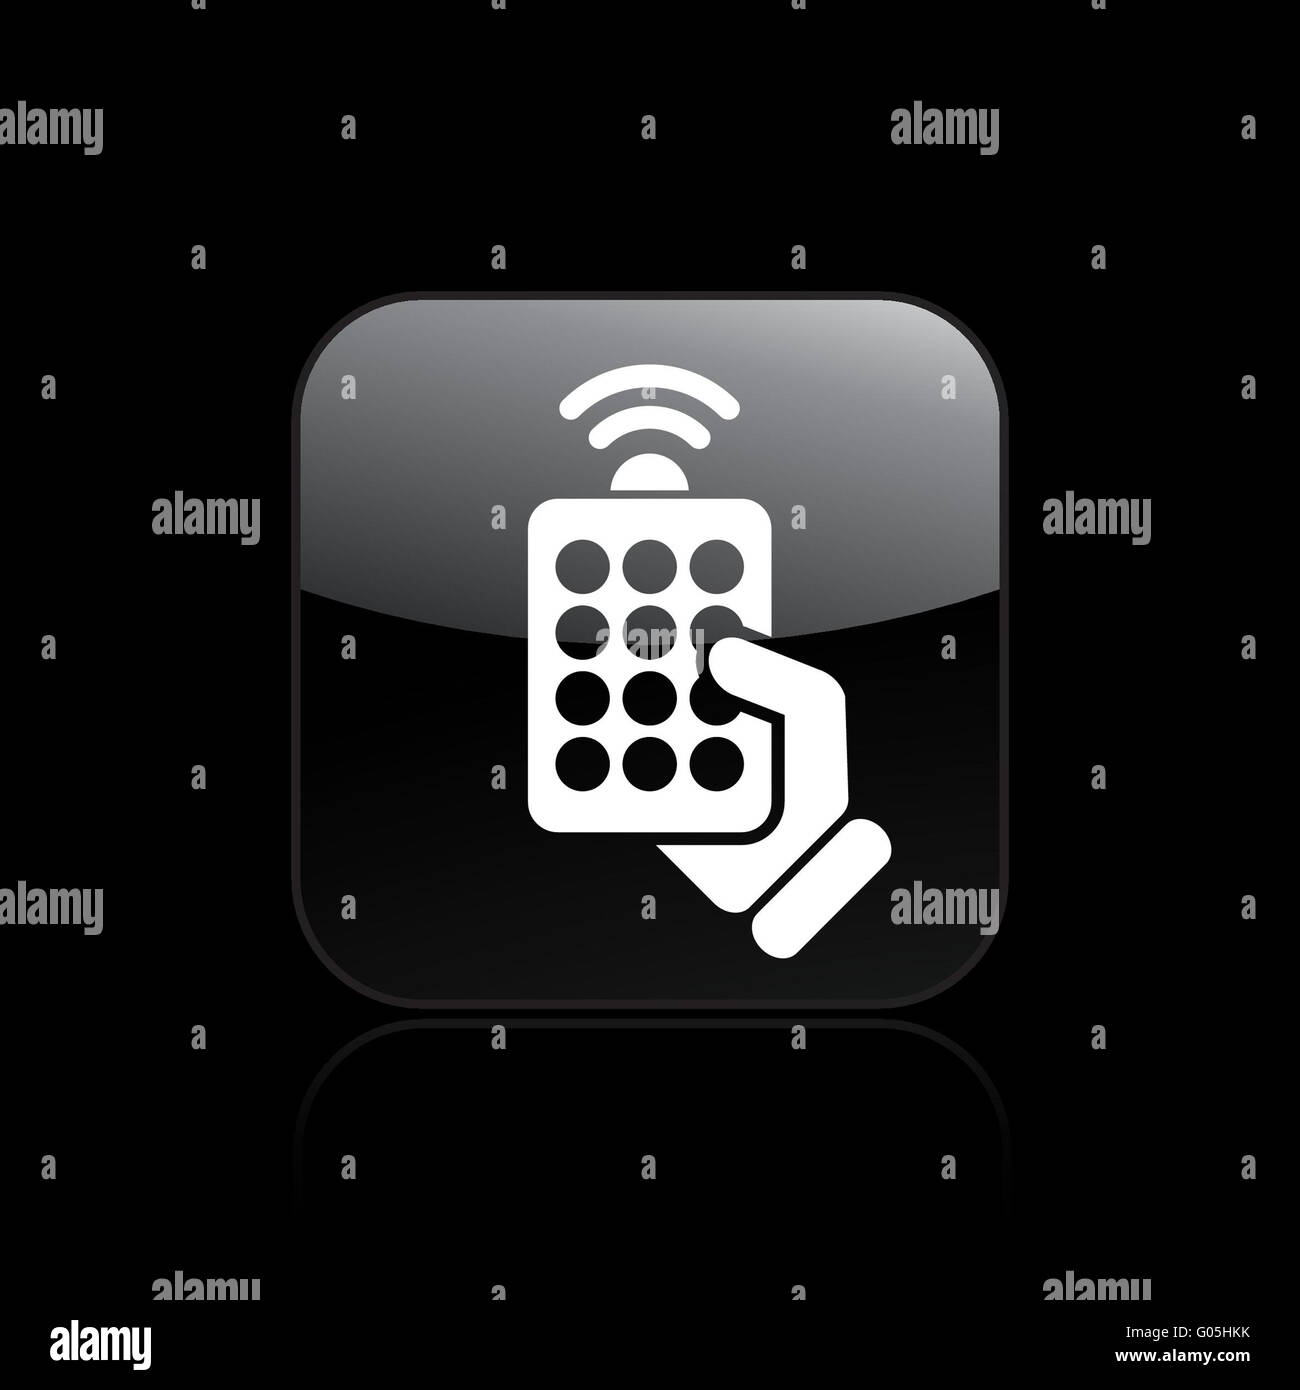 Vector illustration of single remote icon - Stock Image